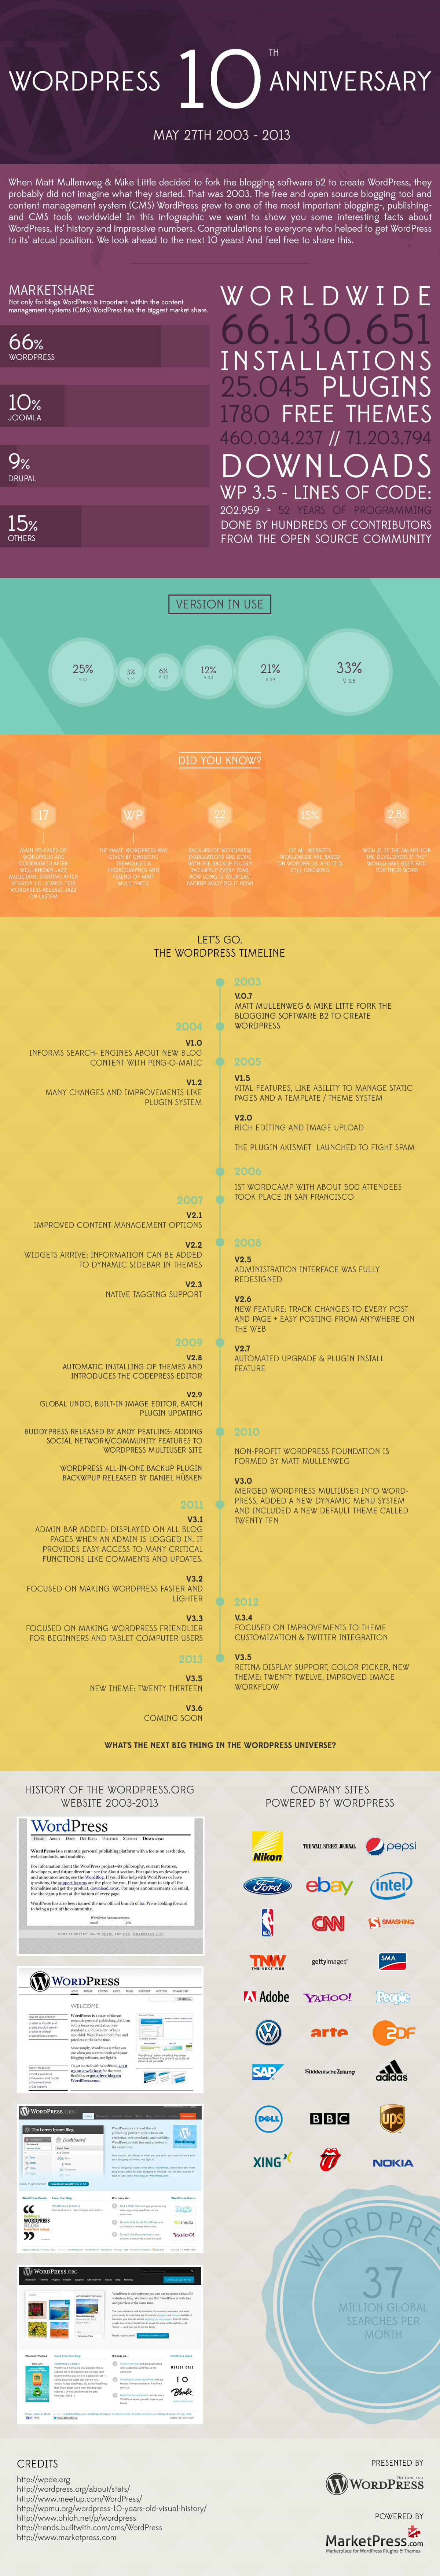 wordpress_10_years_anniversary_infographic_by_marketpresscom.jpg